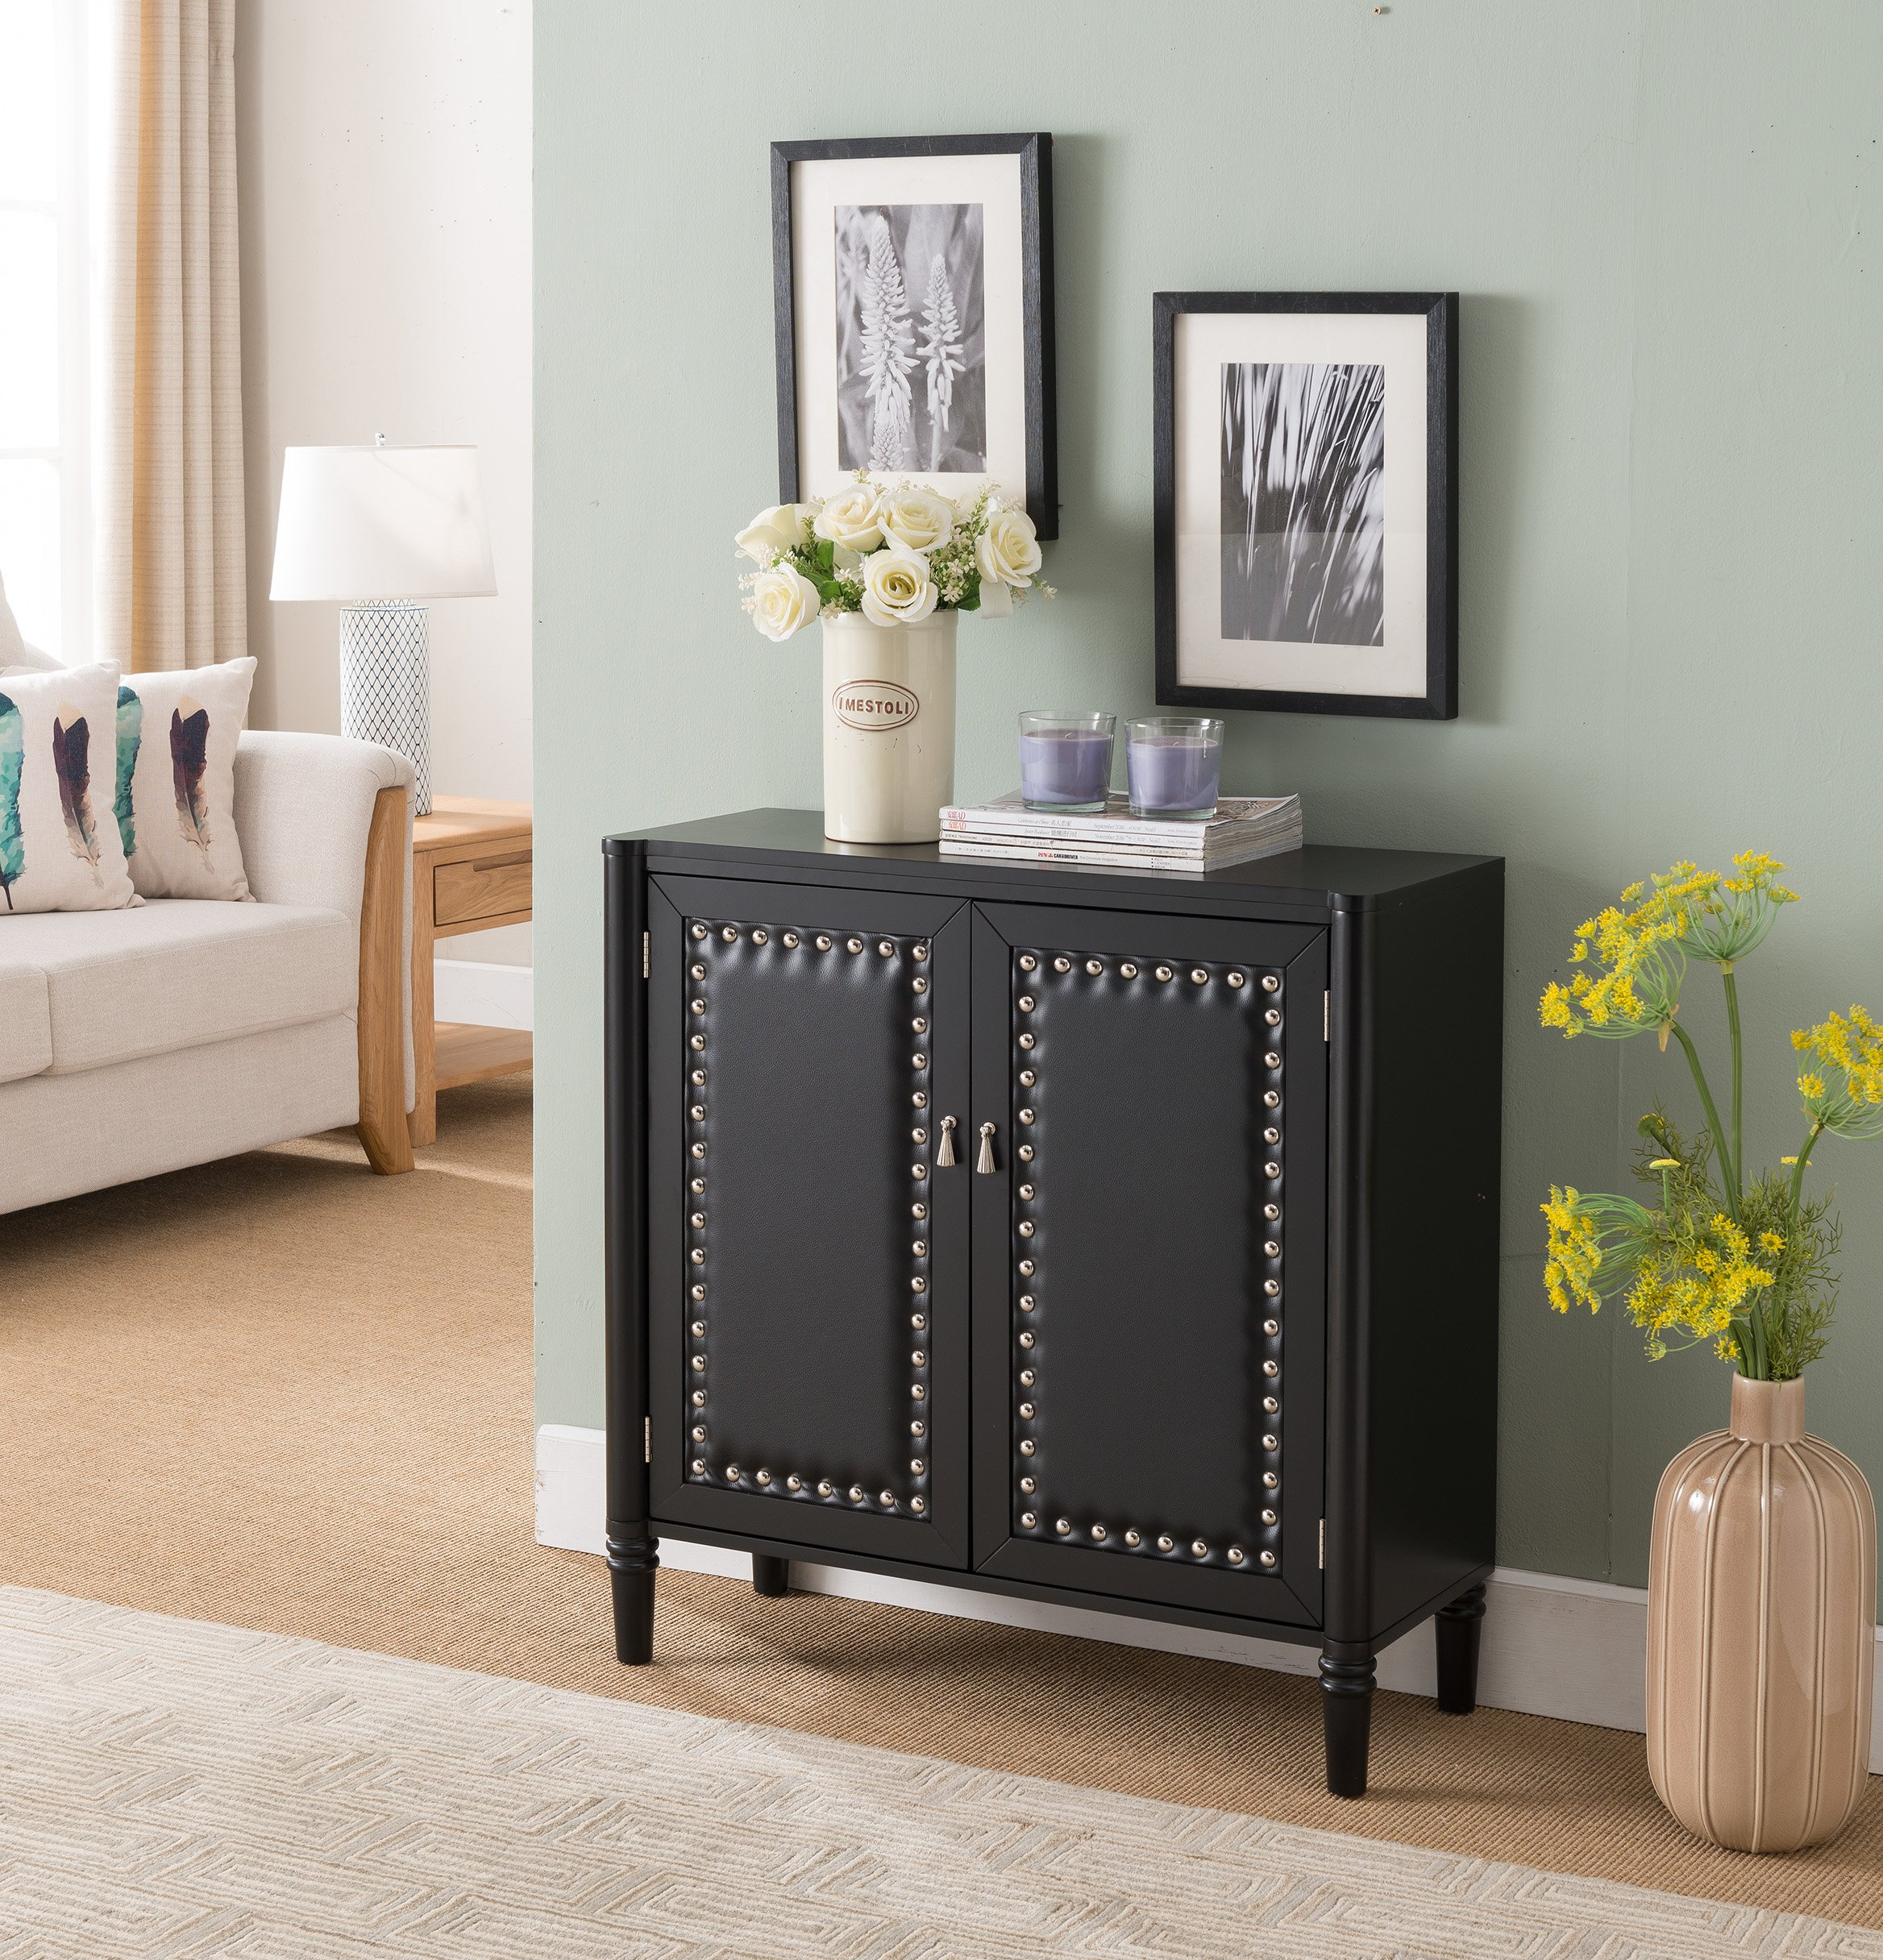 Kings Brand Furniture 2 Door Entryway Console Table Accent Cabinet, Black